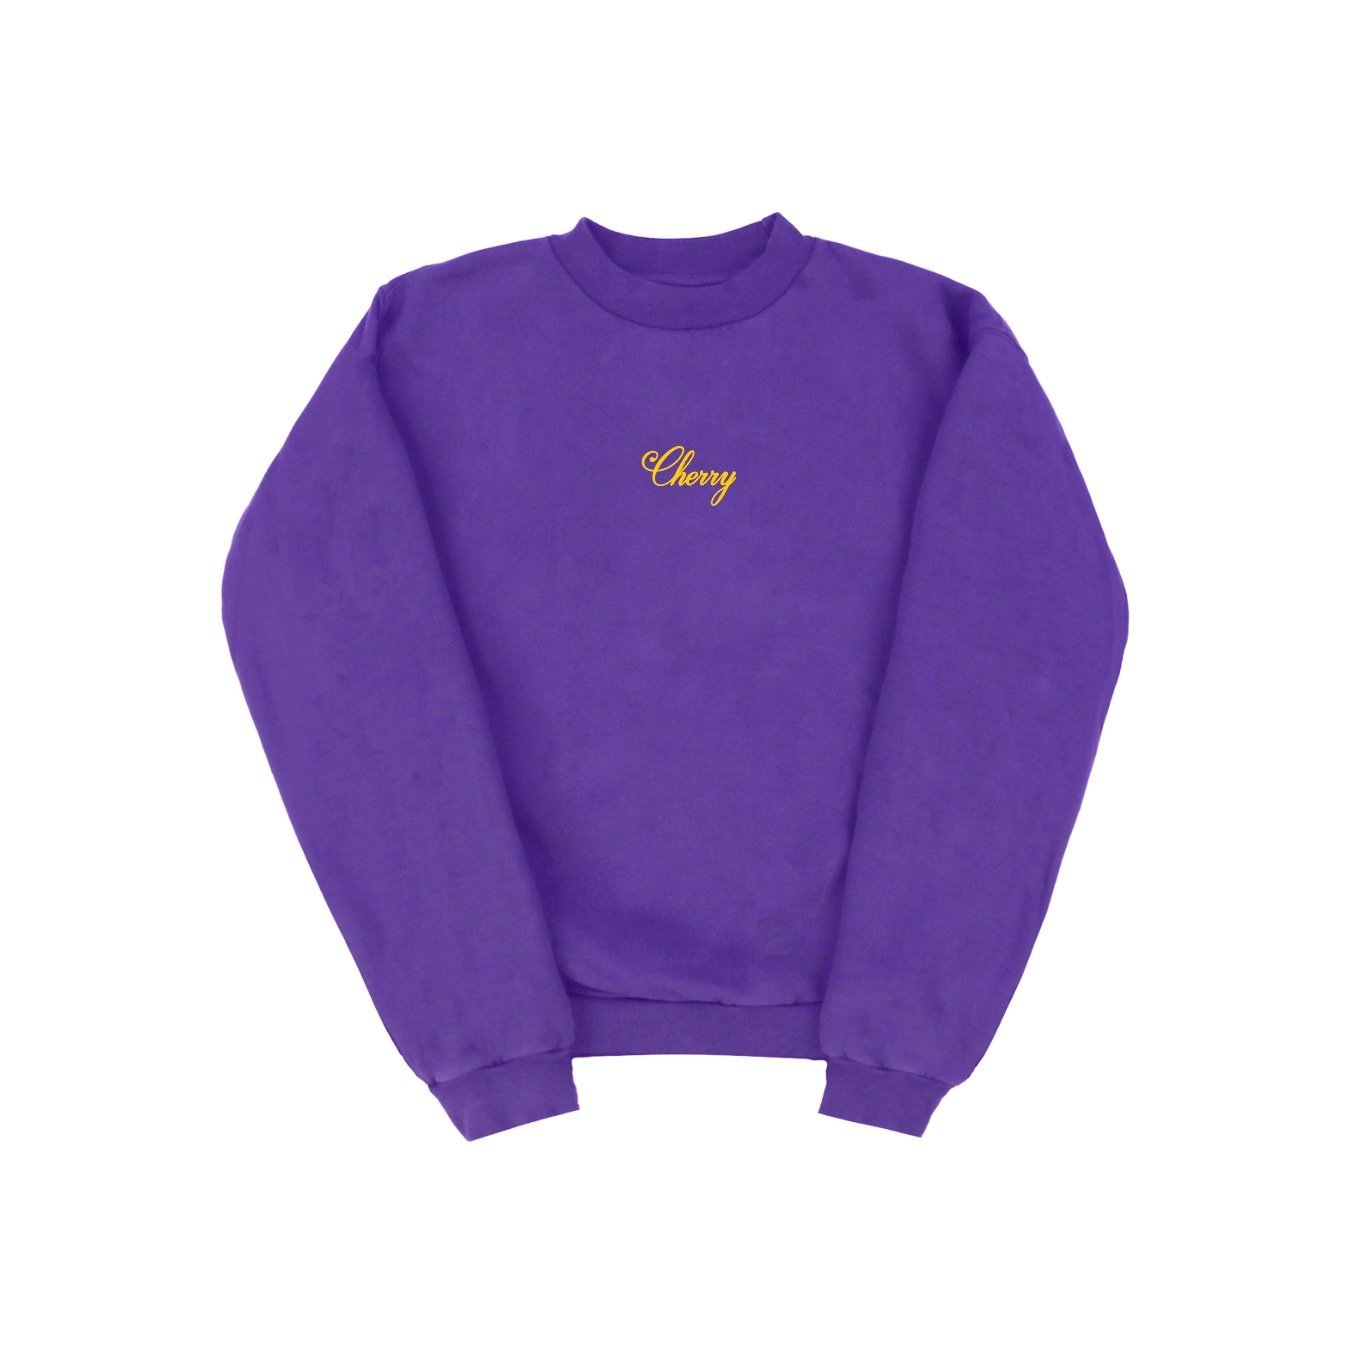 CHAMPIONSHIP CREW by Cherry, available on cherryla.com for $185 Kendall Jenner Top Exact Product